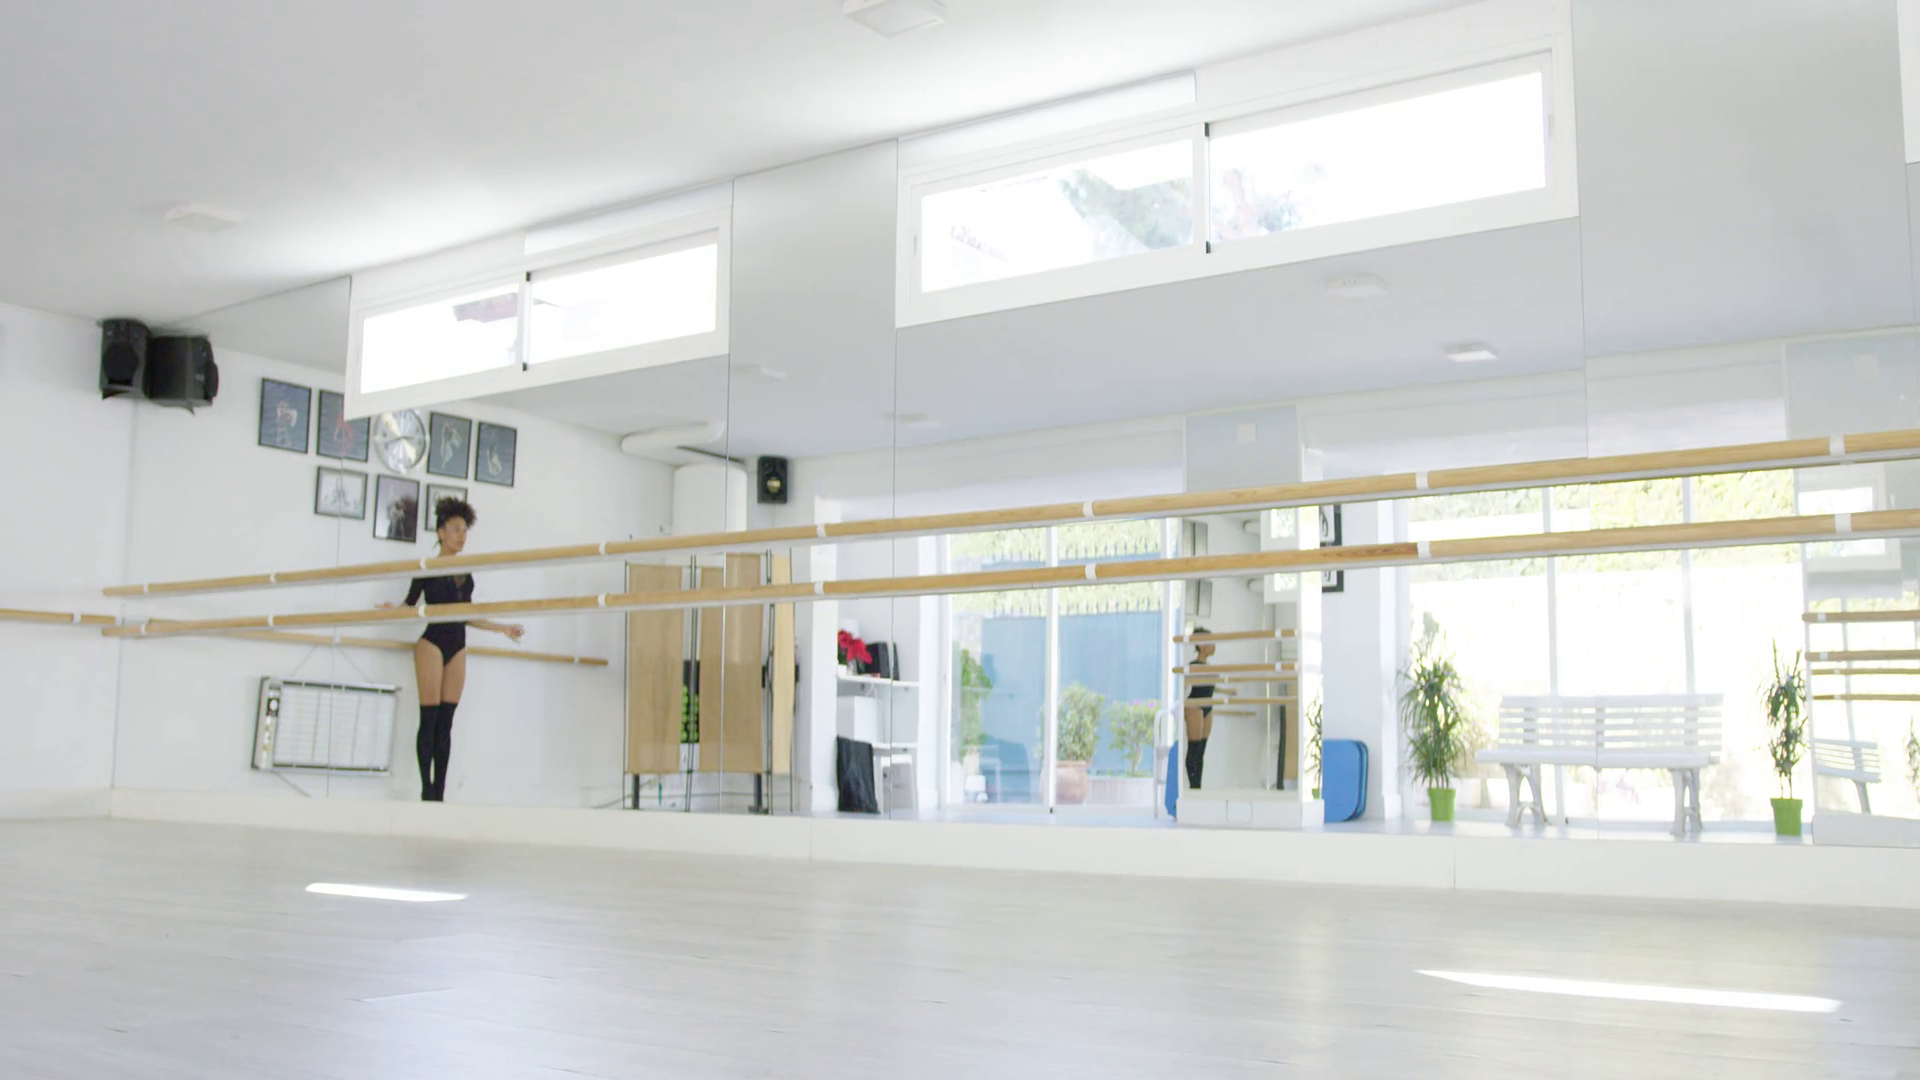 Widely Used Dance Wall Mirrors With Regard To Fit Athletic Young Dancer Leaping In The Air As She Practices In A Dance Studio In Front Of A Large Wall Mirror Low Angle With Copy Space (View 10 of 20)